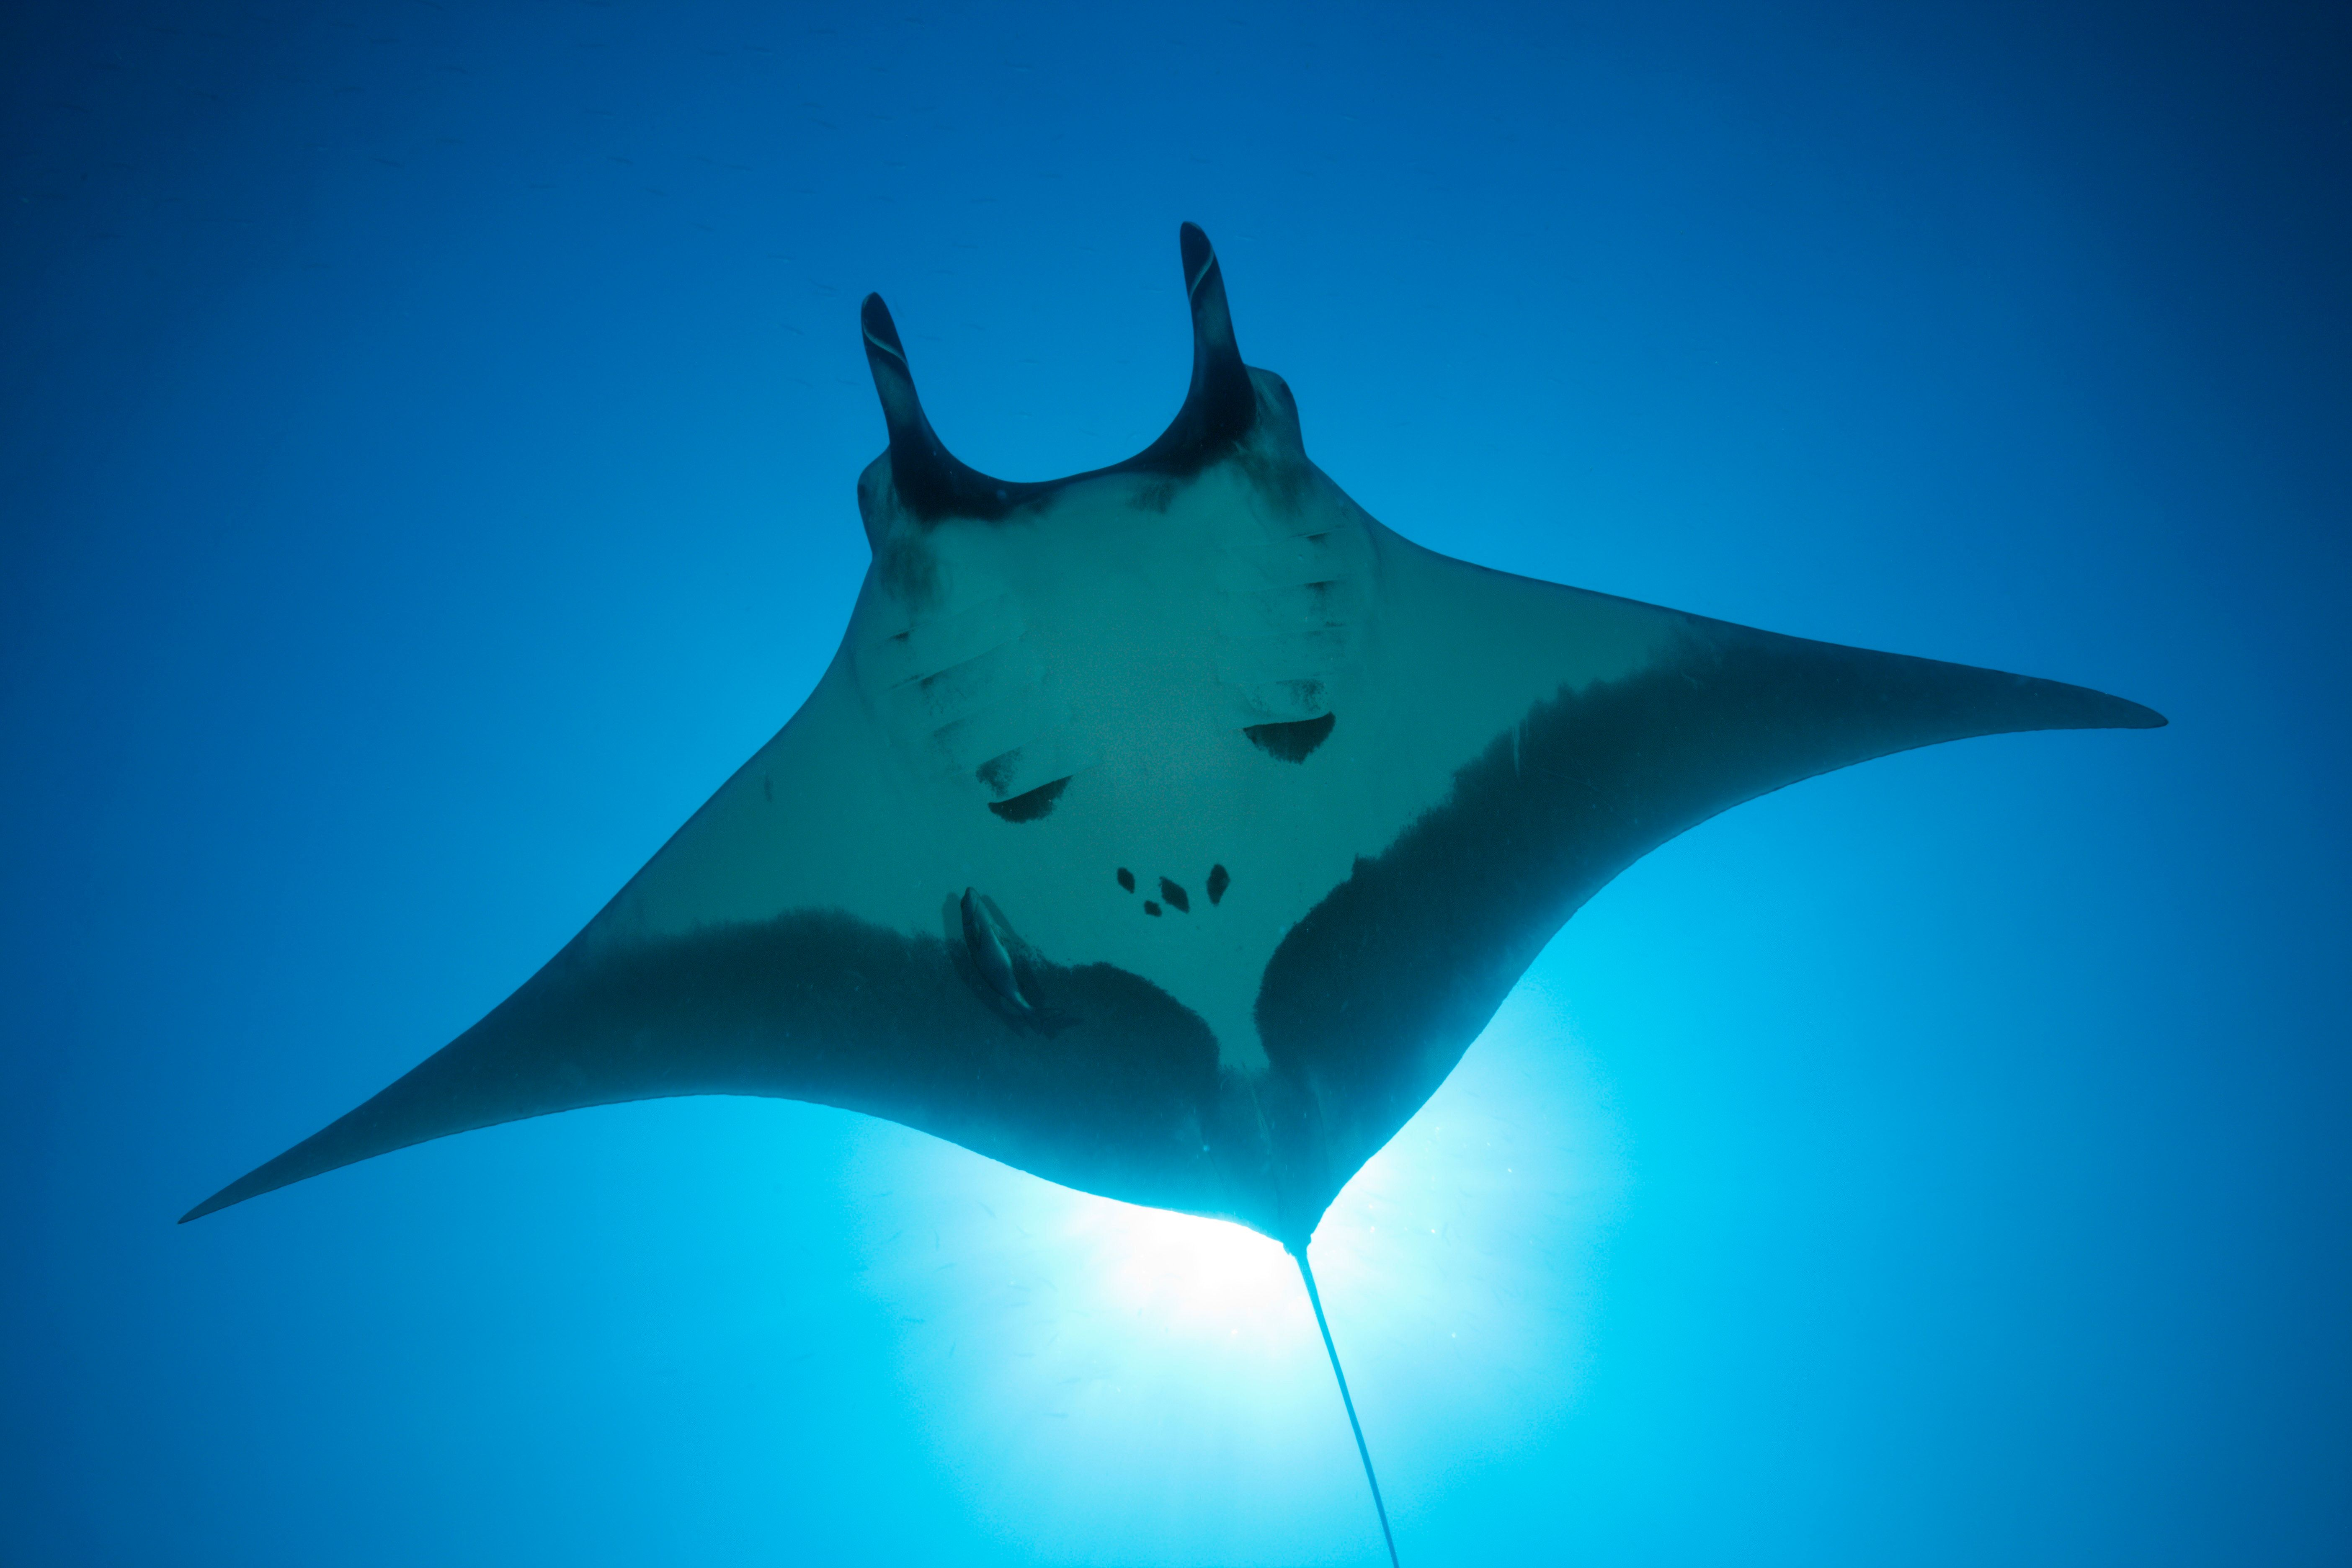 (GERMANY OUT) Manta, Manta birostris, San Benedicto, Revillagigedo Islands, Mexico  (Photo by Reinhard Dirscherl/ullstein bild via Getty Images)